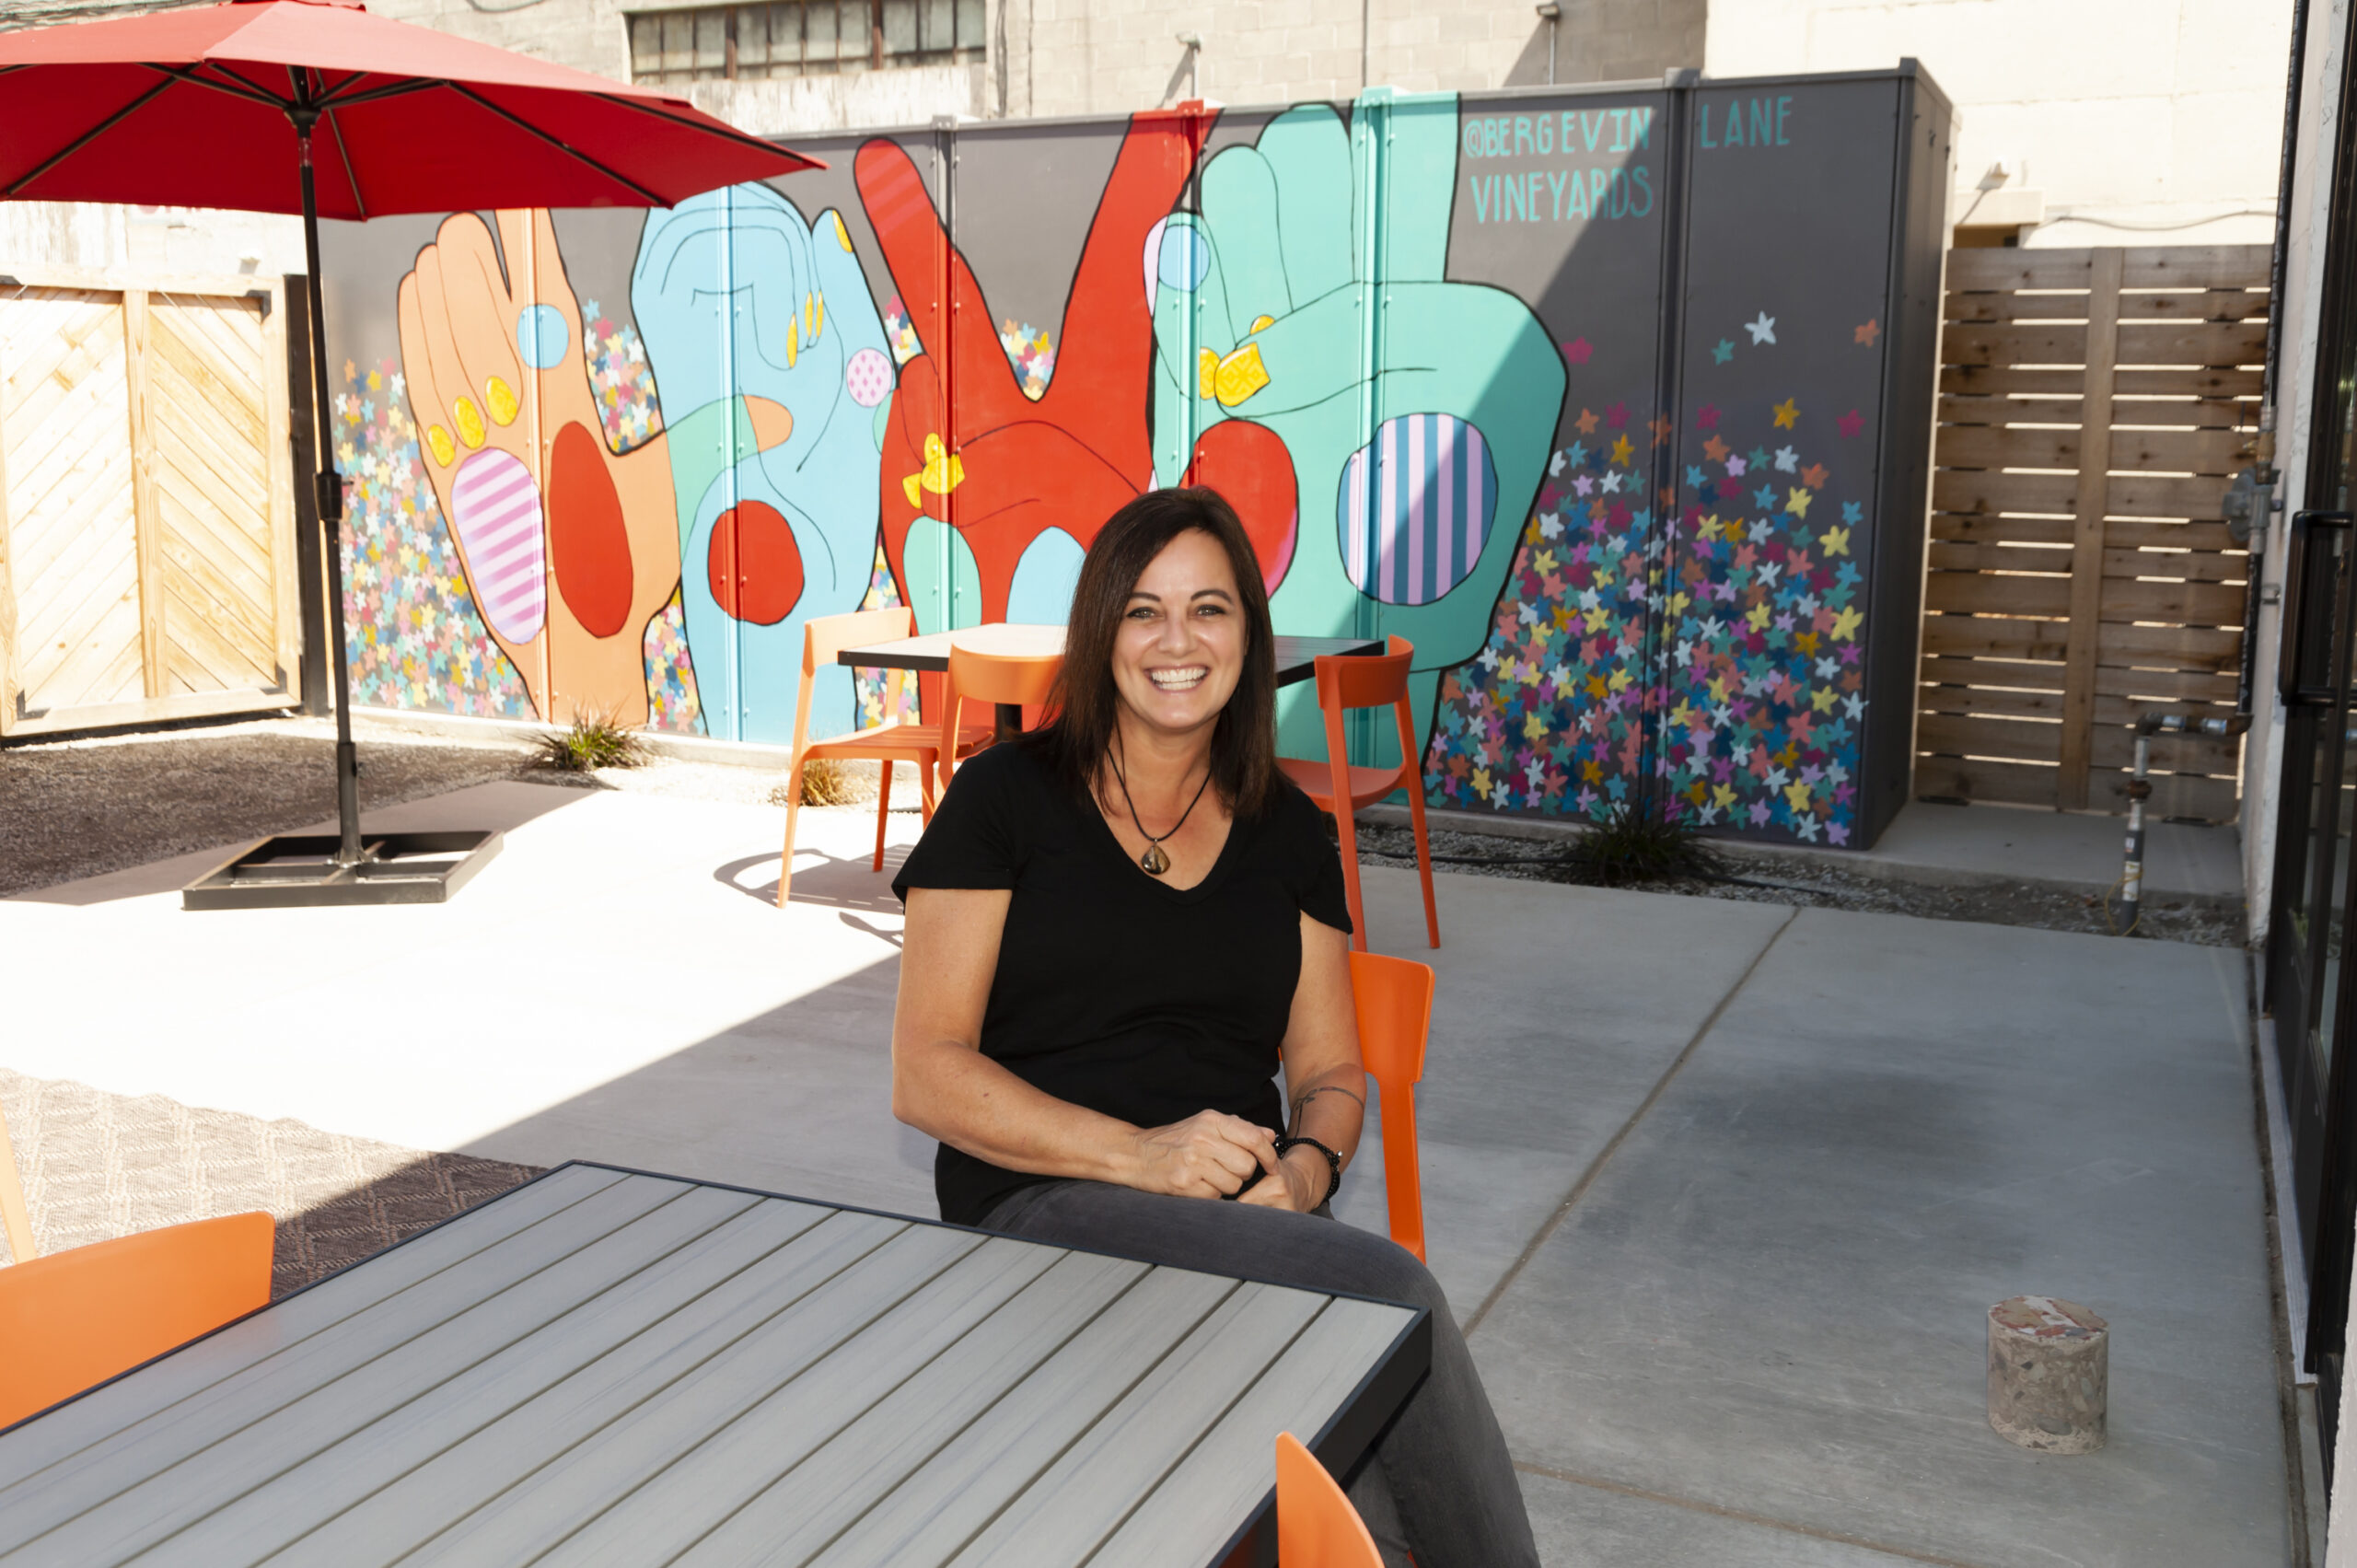 Woman with dark hair sits at a picnic table in front of a red, blue, and grey mural of hands, with Bergevin Lane Vineyards written on the wall.